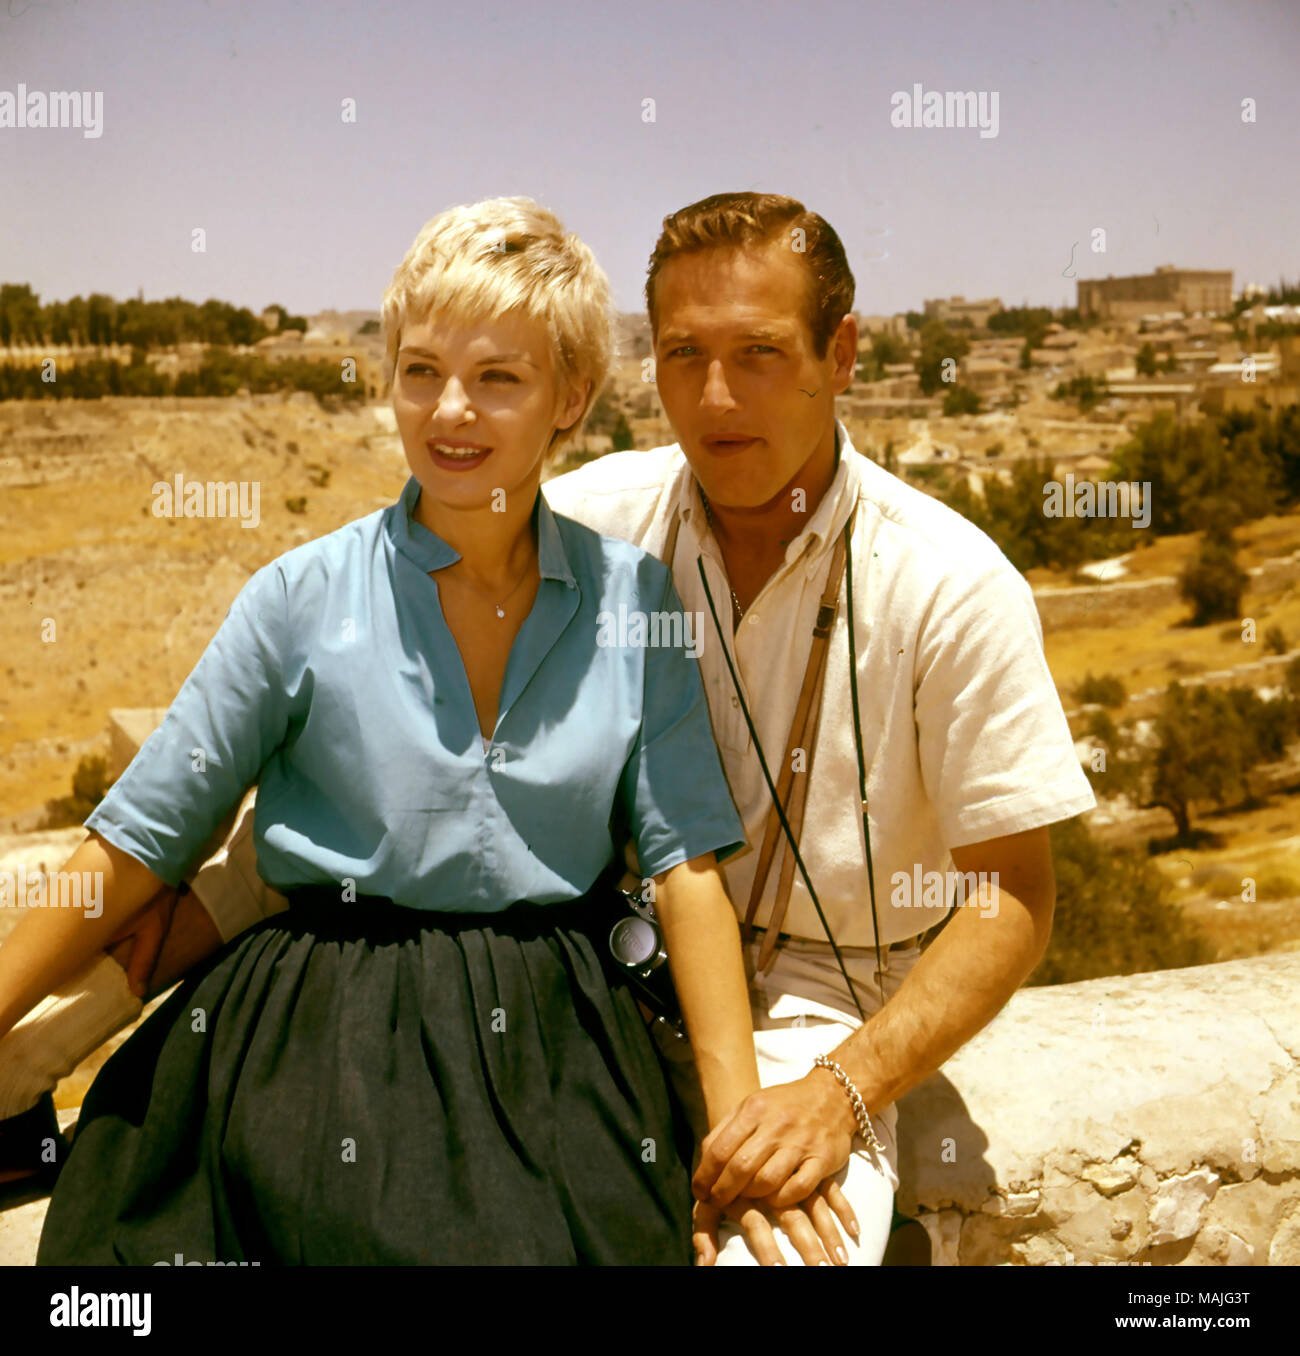 PAUL NEWMAN (1925-2008) American actor with his wife Joanne Woodward in 1960 while filming Exodus in Israel - Stock Image